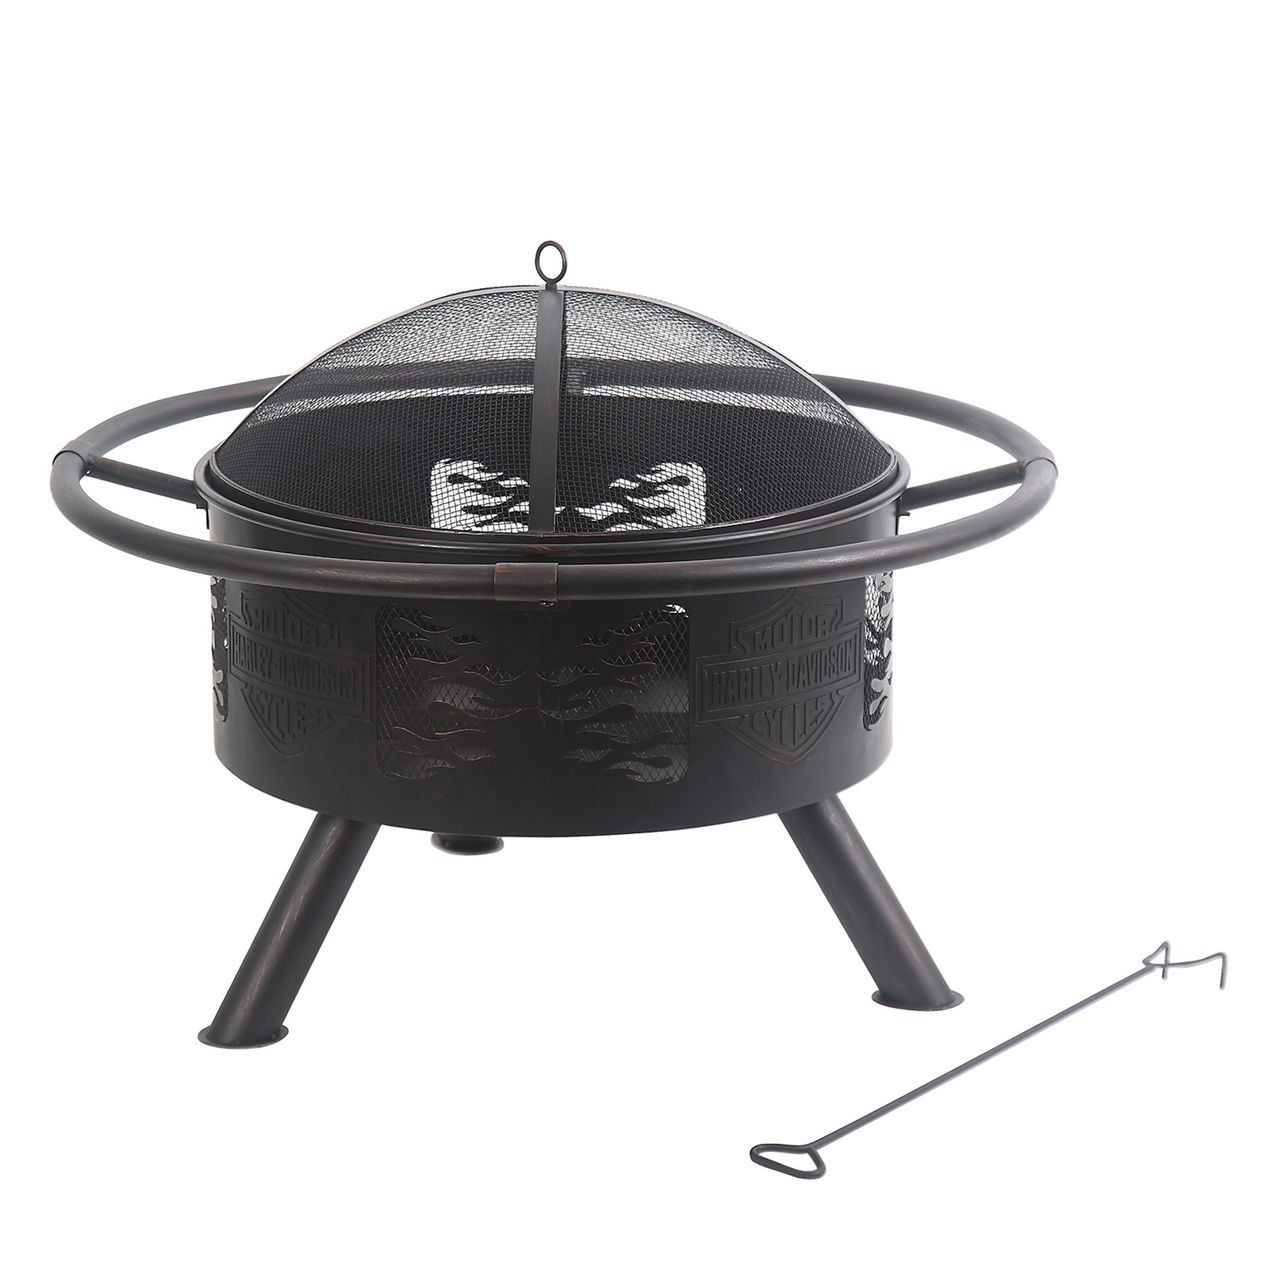 Harley-Davidson Bar & Shield Fire Pit HDL-10066